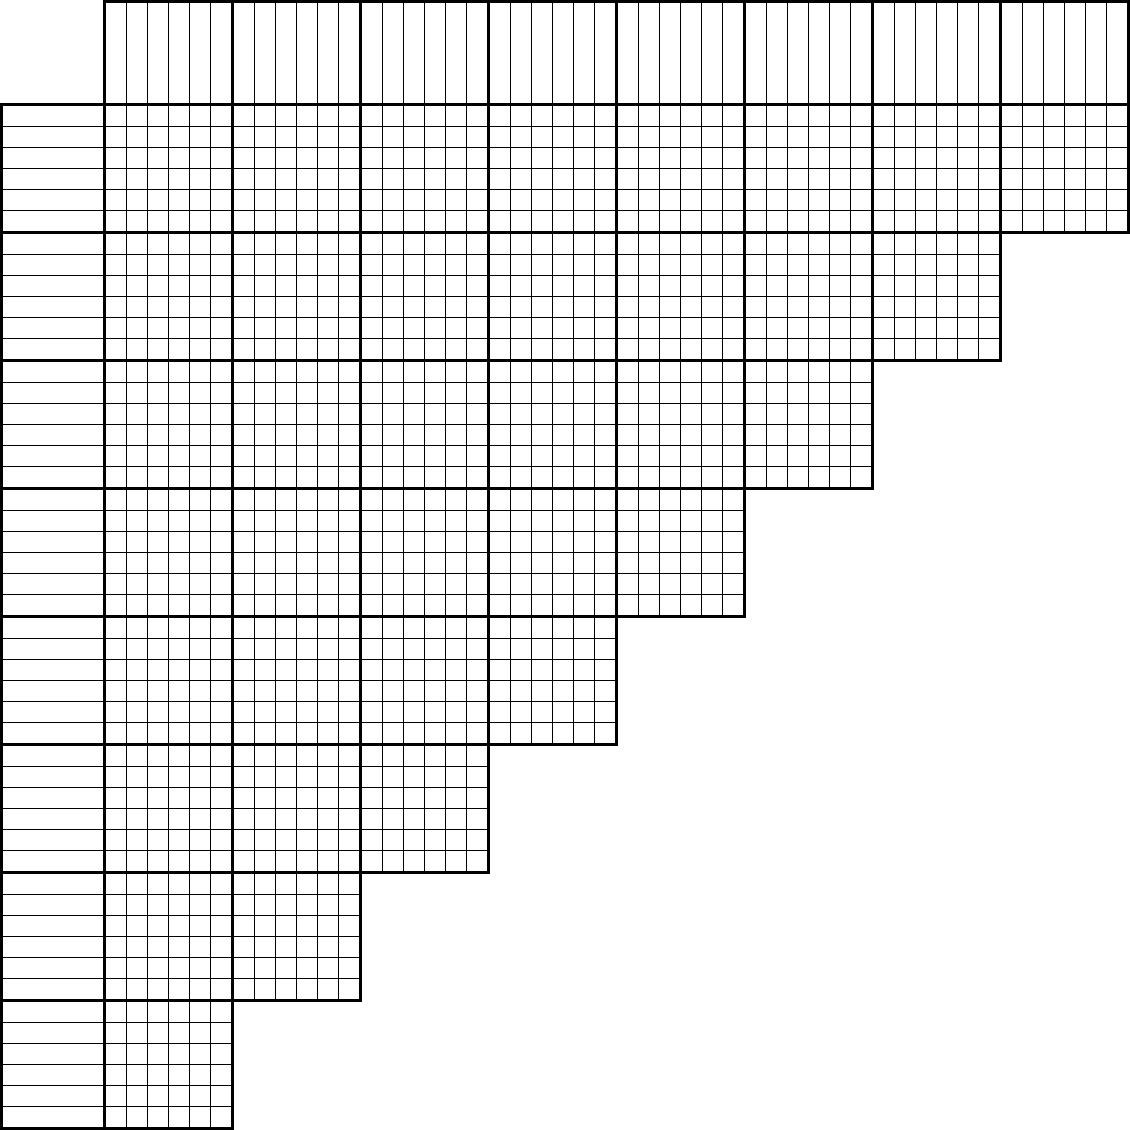 Tlstyer - Logic Puzzle Grids - Printable Logic Puzzle Grid